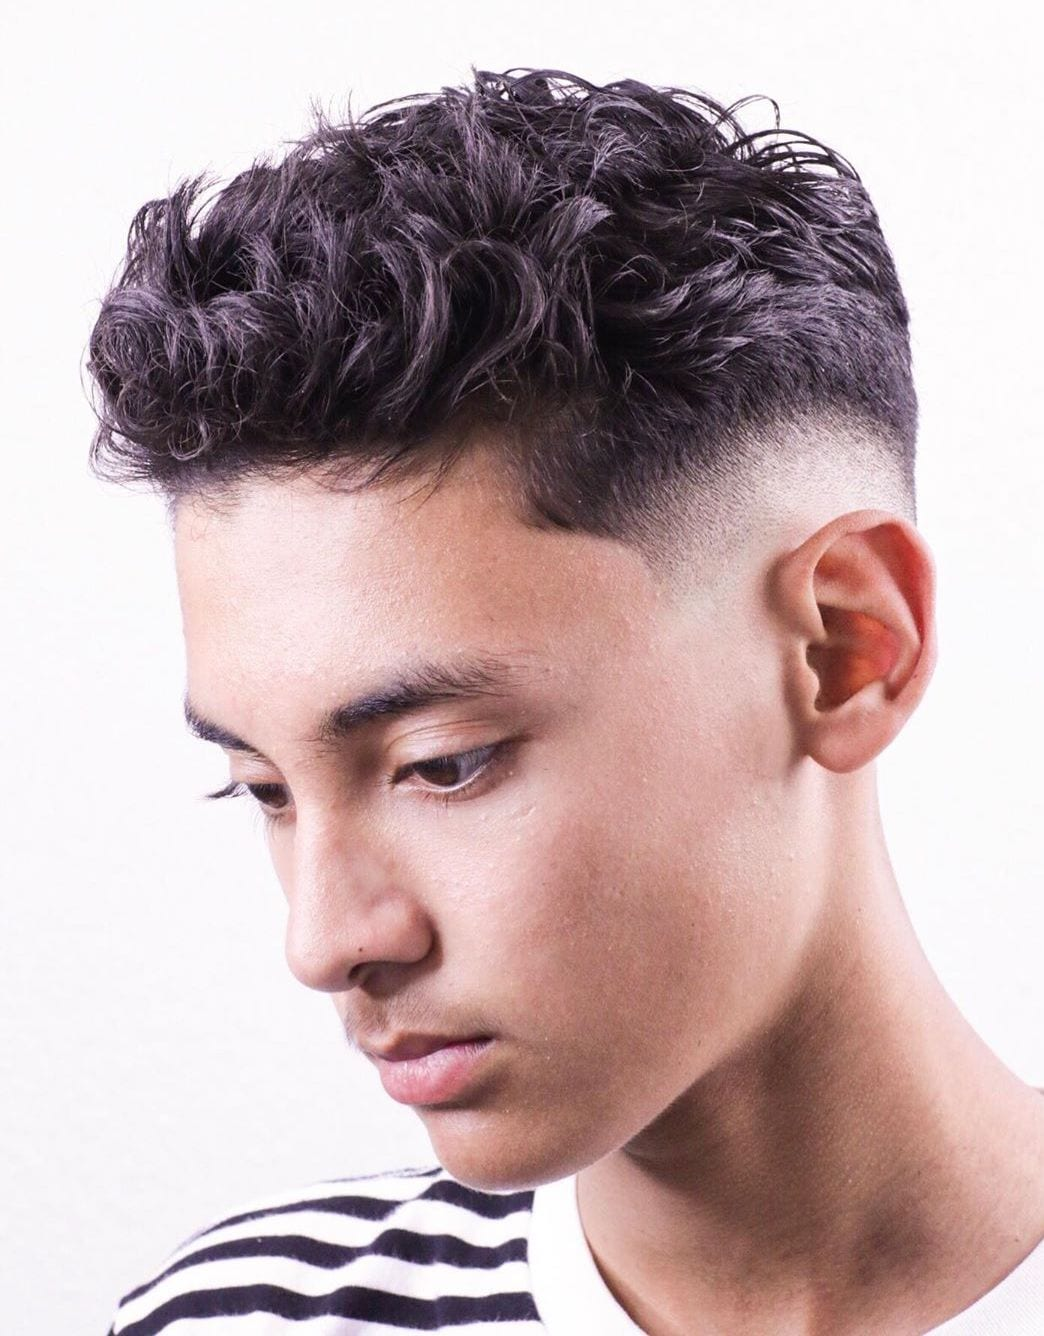 20 Of The Most Popular 10 Year Old Boy Haircuts Haircut Inspiration Cool edgar cut for latino guys #menshairstyles #menshair #menshaircuts #menshaircutideas #menshairstyletrends #mensfashion #mensstyle #fade. year old boy haircuts